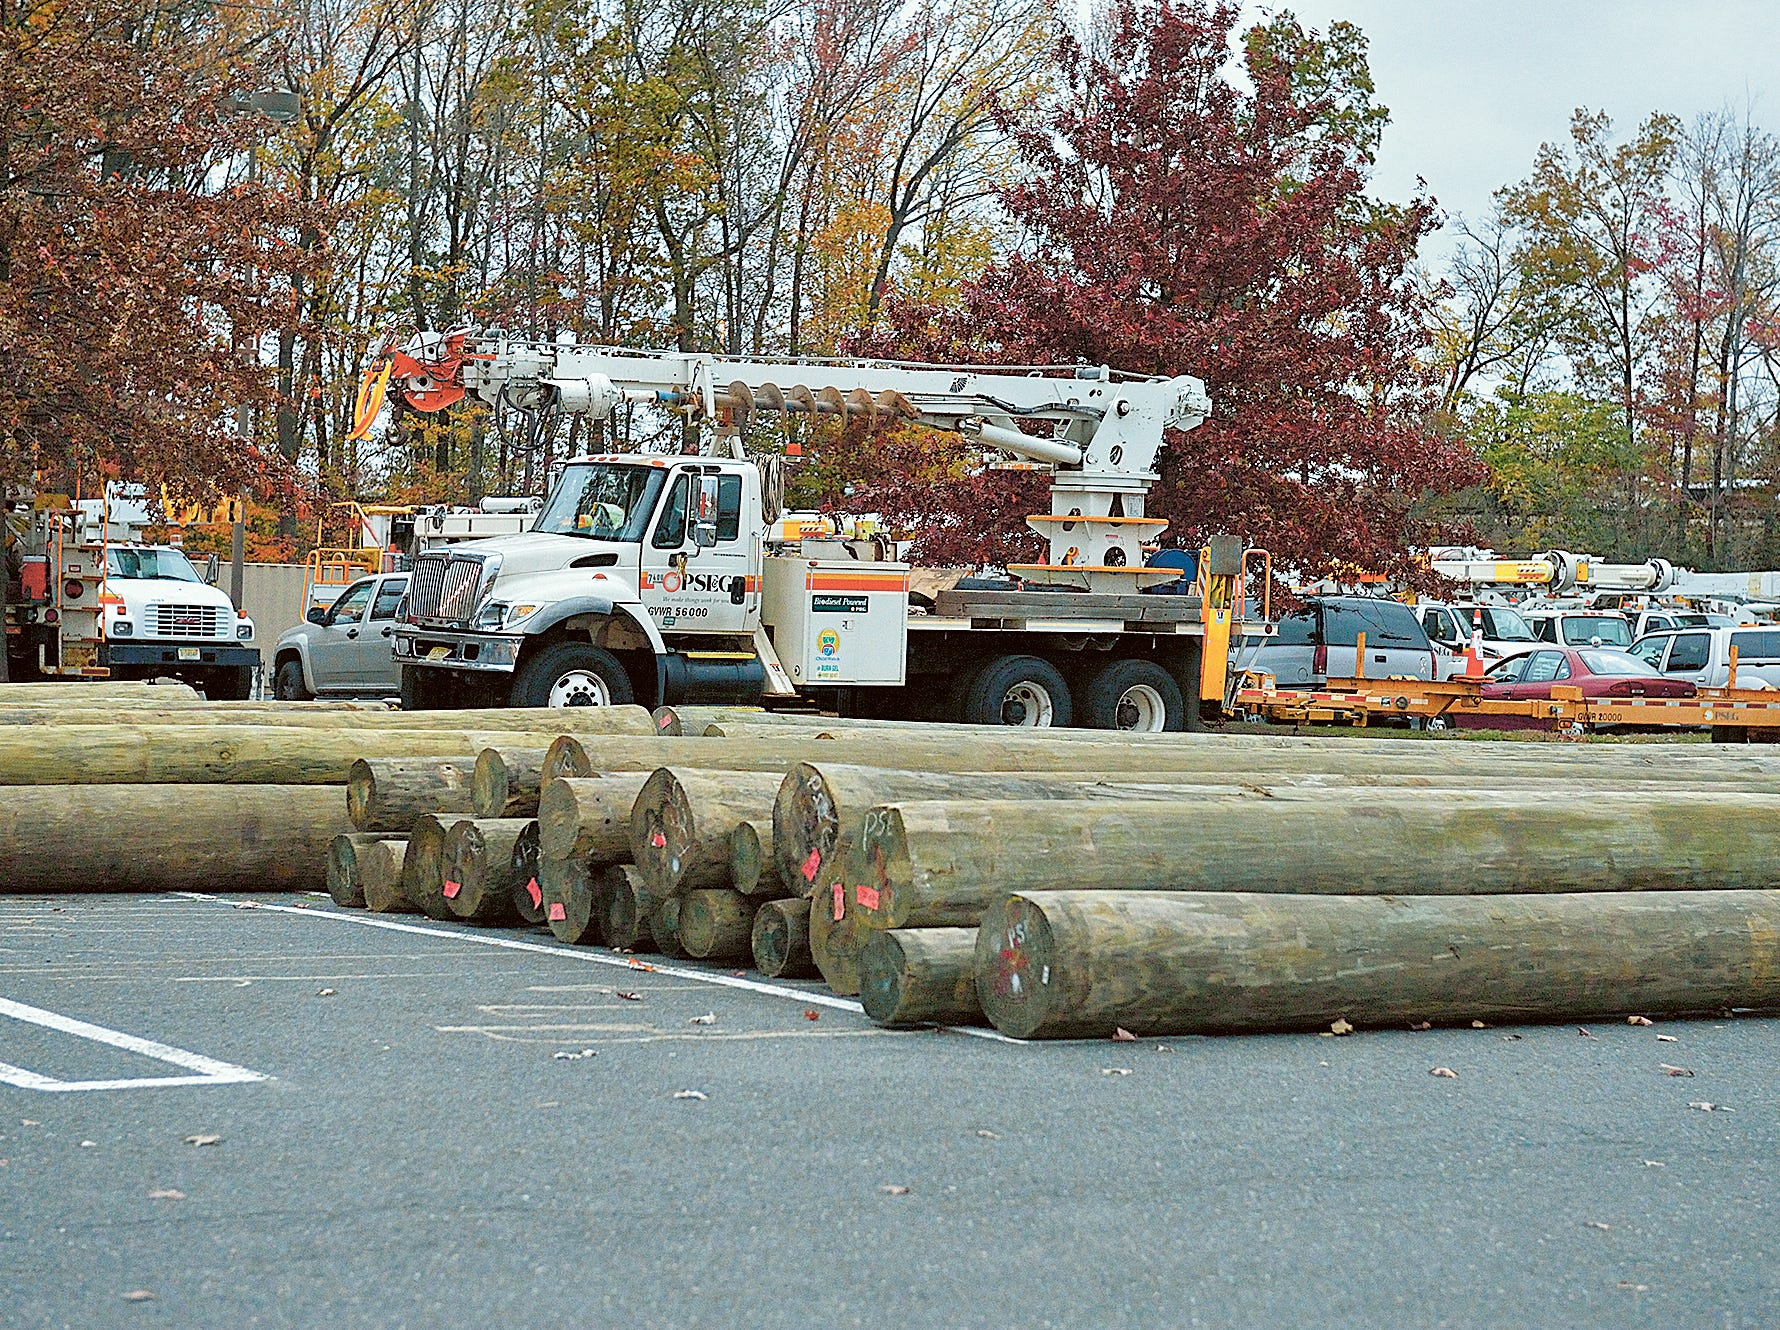 At the Garden State Plaza in Paramus, PSE&G crews and utility trucks gather at a staging area in anticipation of damage caused by Hurricane Sandy.